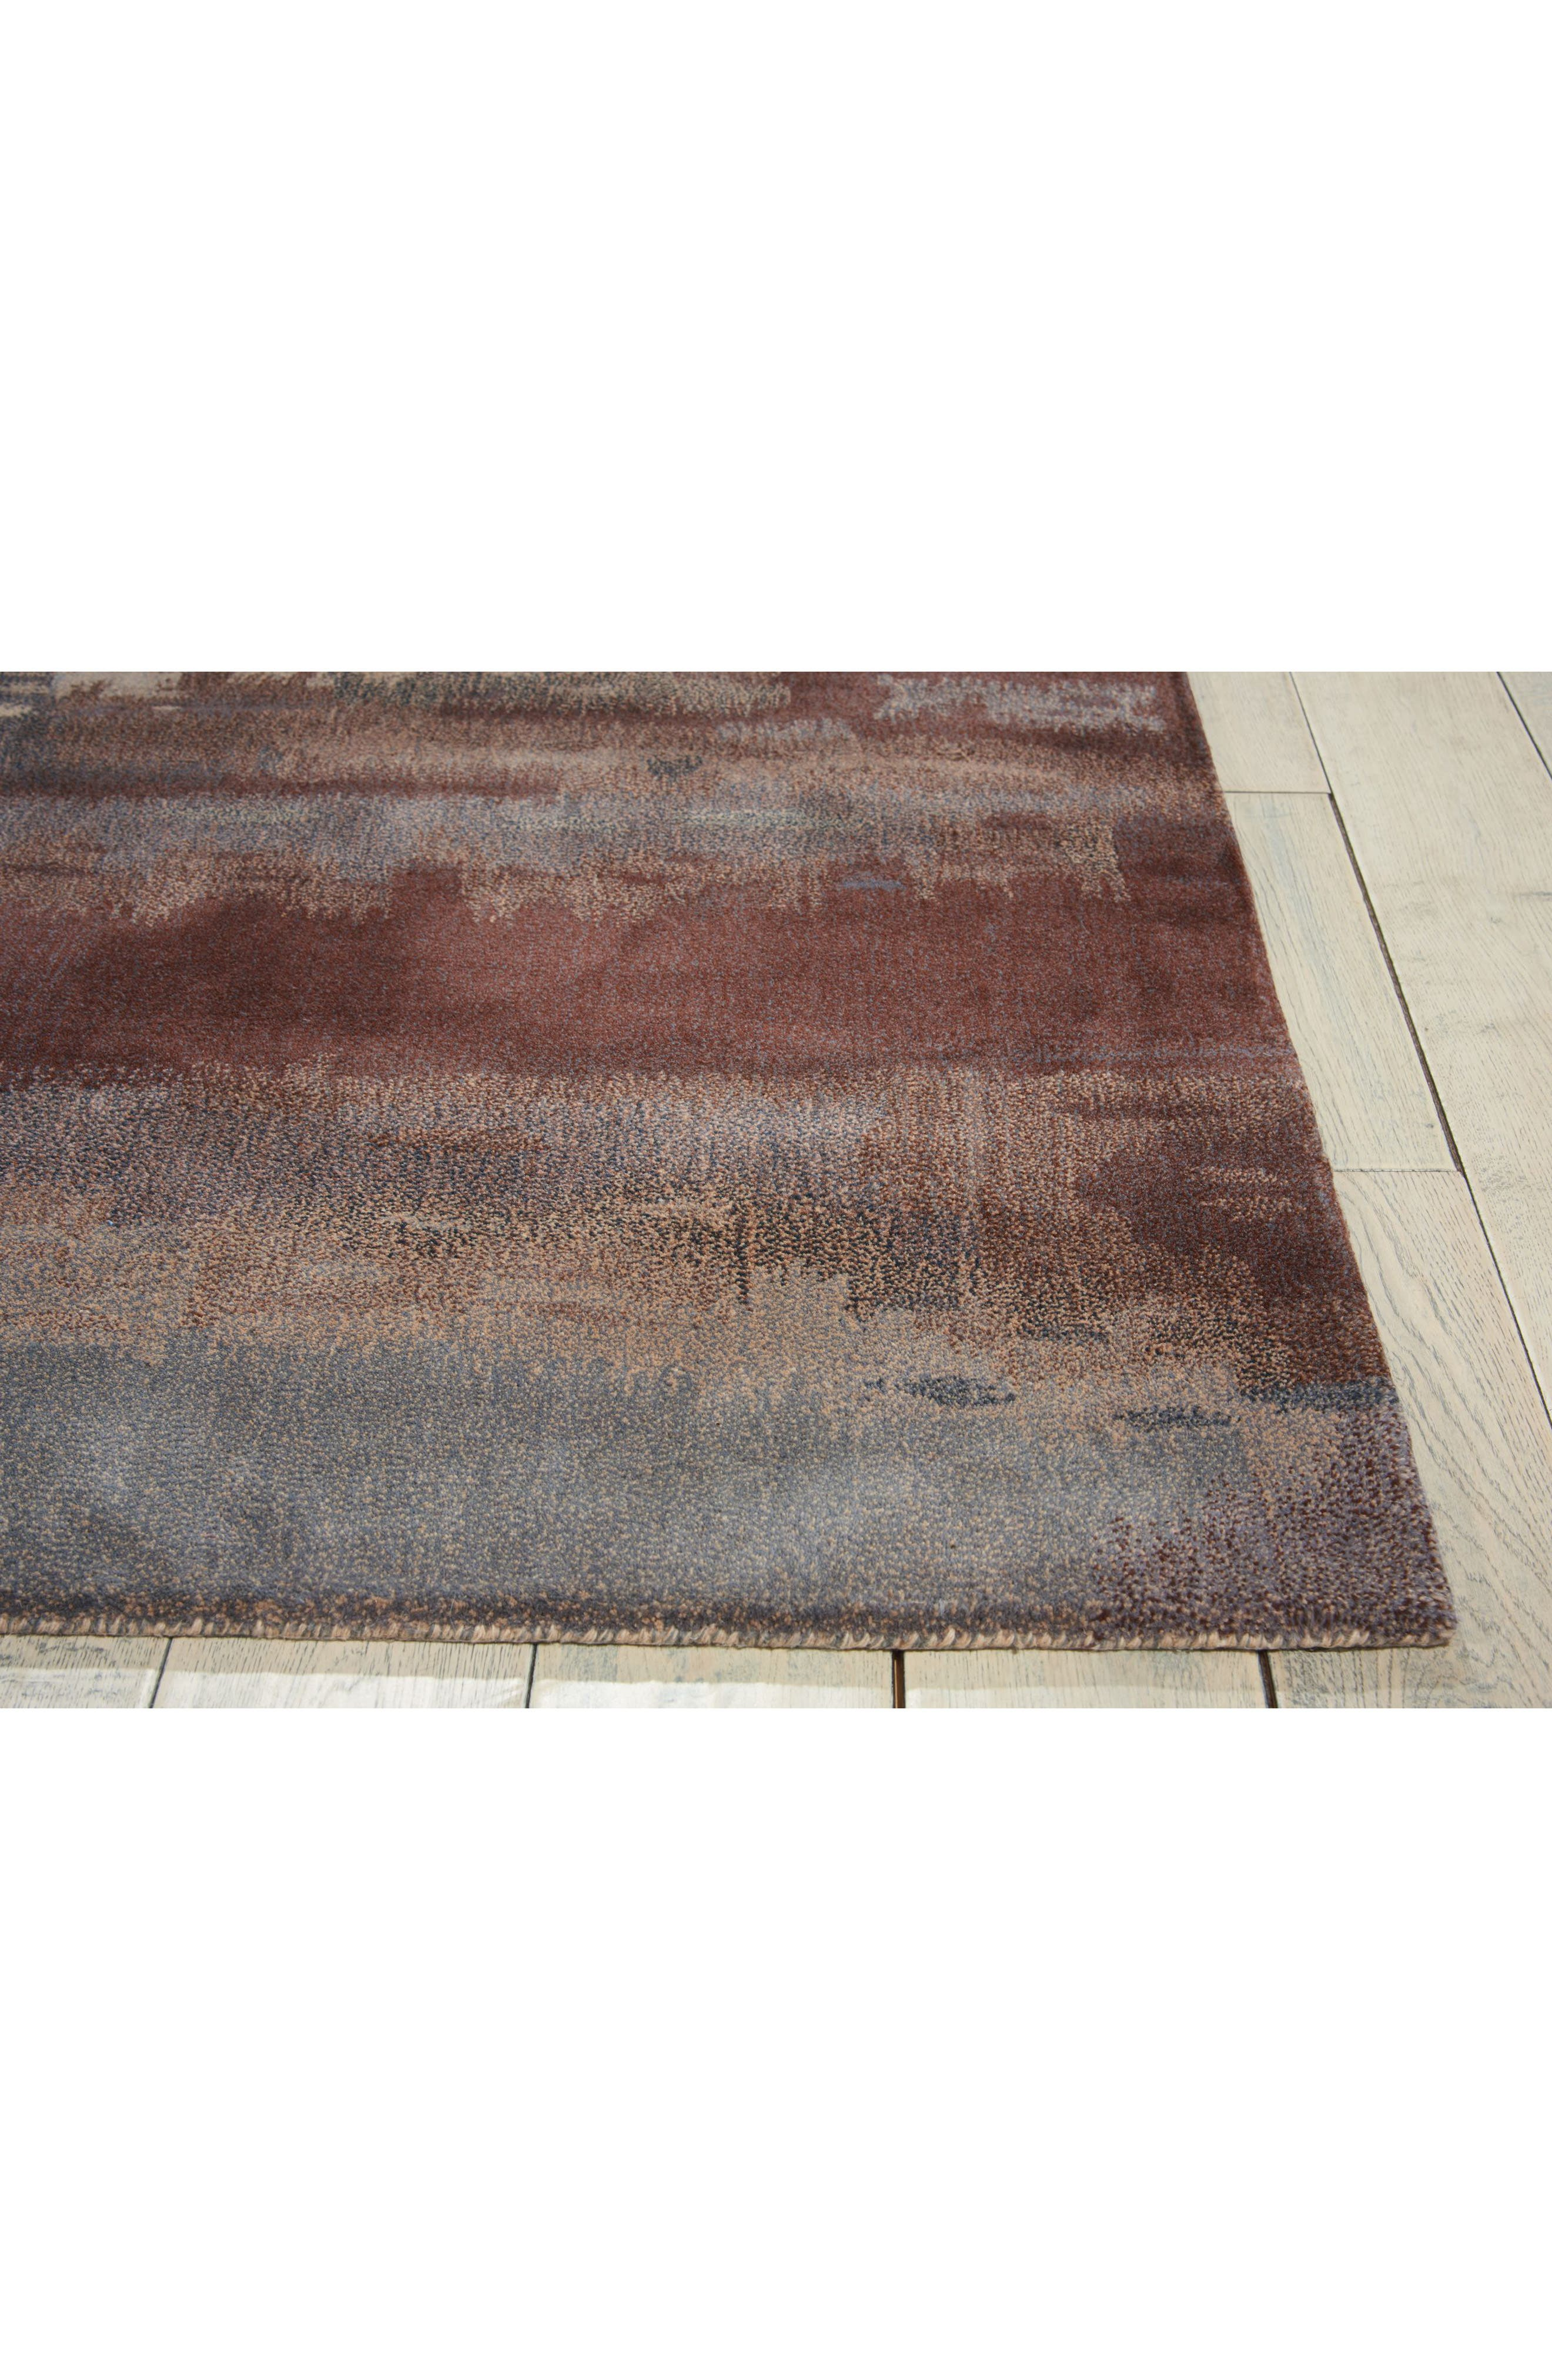 Luster Wash Wool Area Rug,                             Alternate thumbnail 14, color,